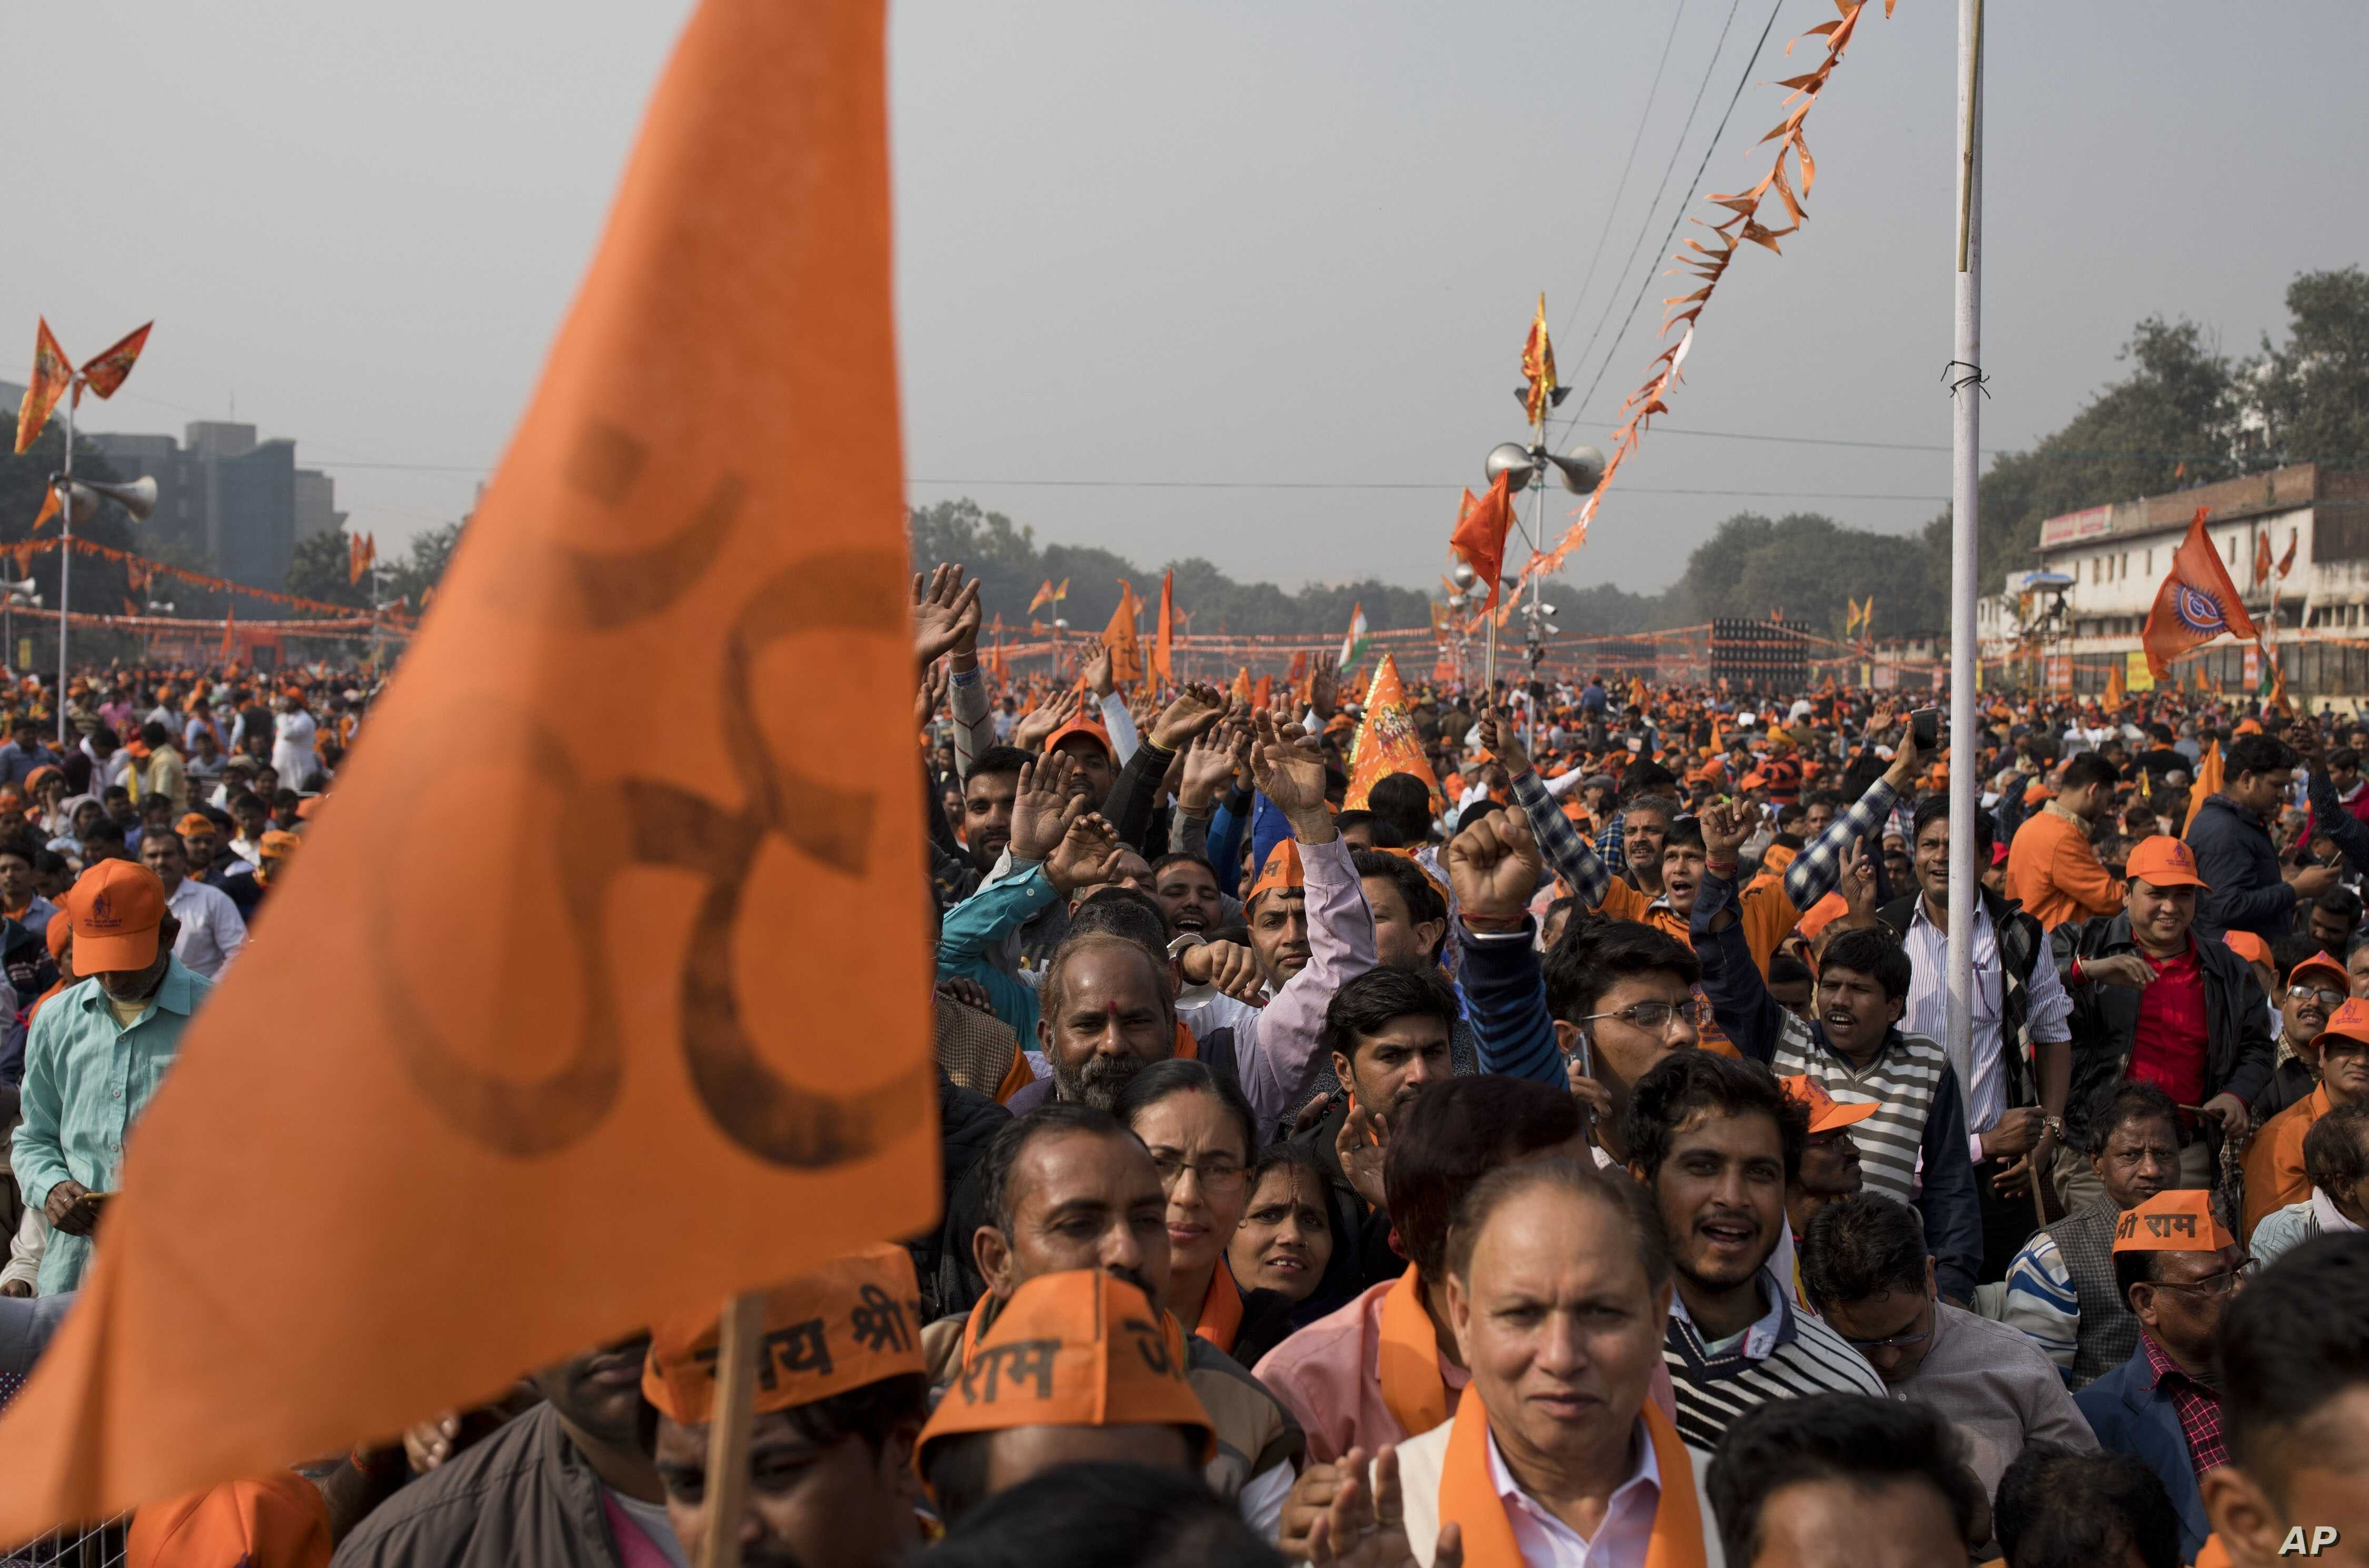 Supporters of Vishwa Hindu Parishad gather during a rally in New Delhi, Dec. 9, 2018. The right-wing group gathered thousands of supporters in the Indian capital to demand the construction of a Hindu temple on a site where a mosque was attacked and d...